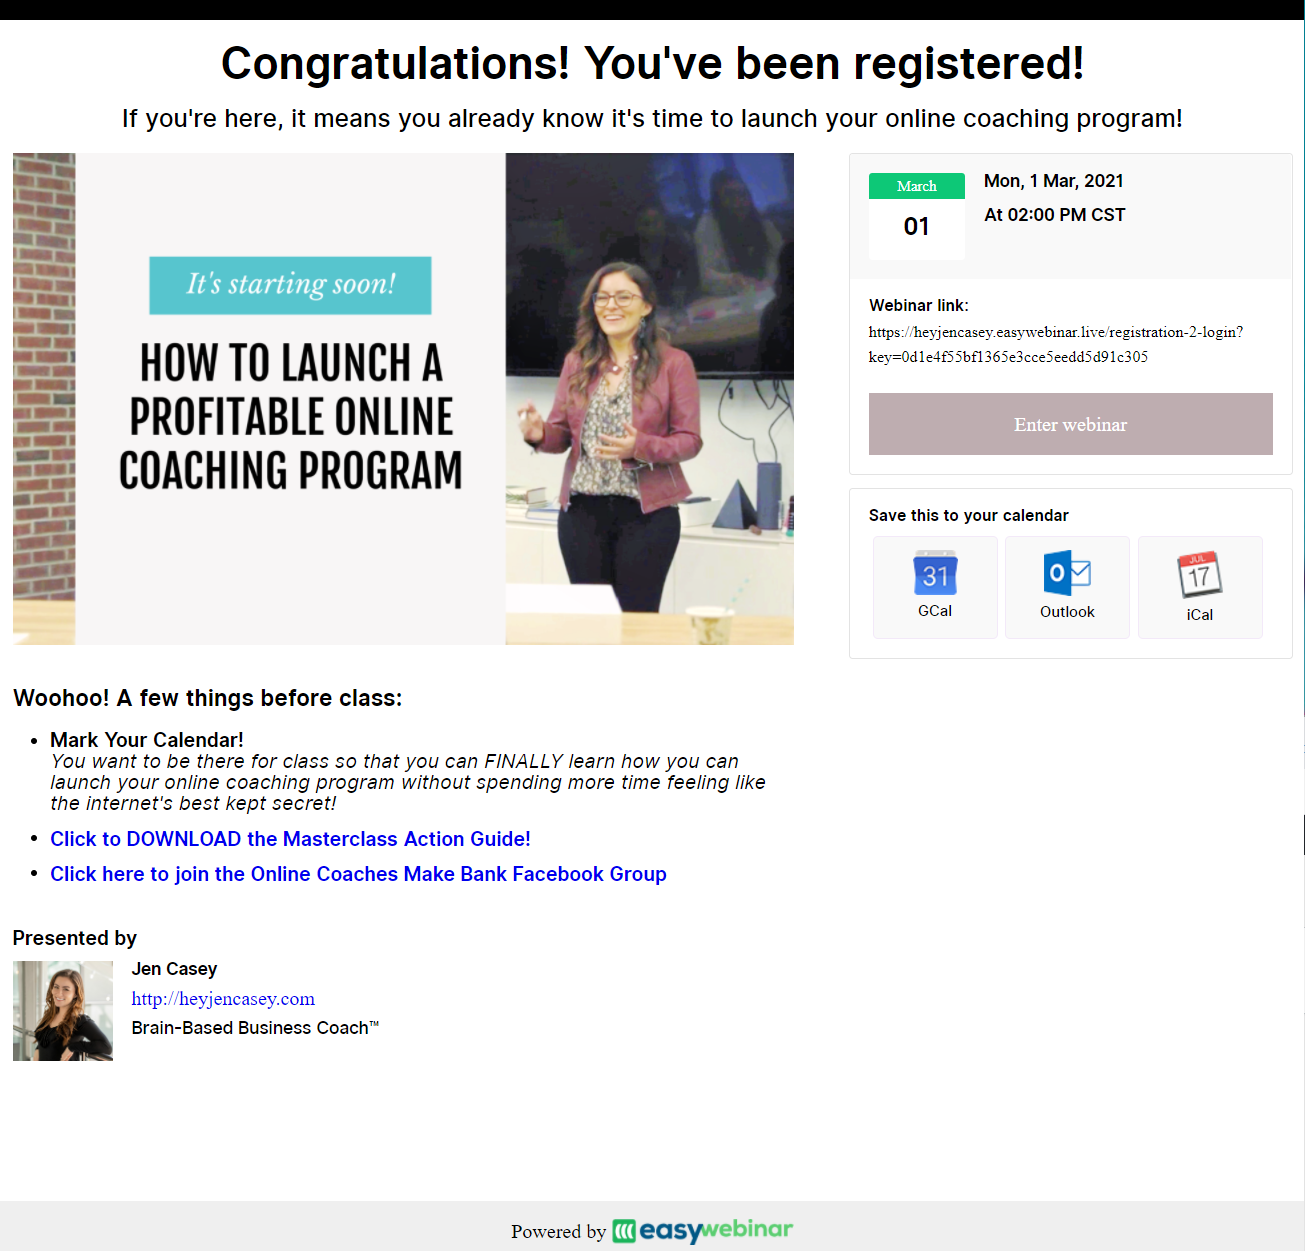 Screenshot of a registration confirmation page for an online coaching seminar